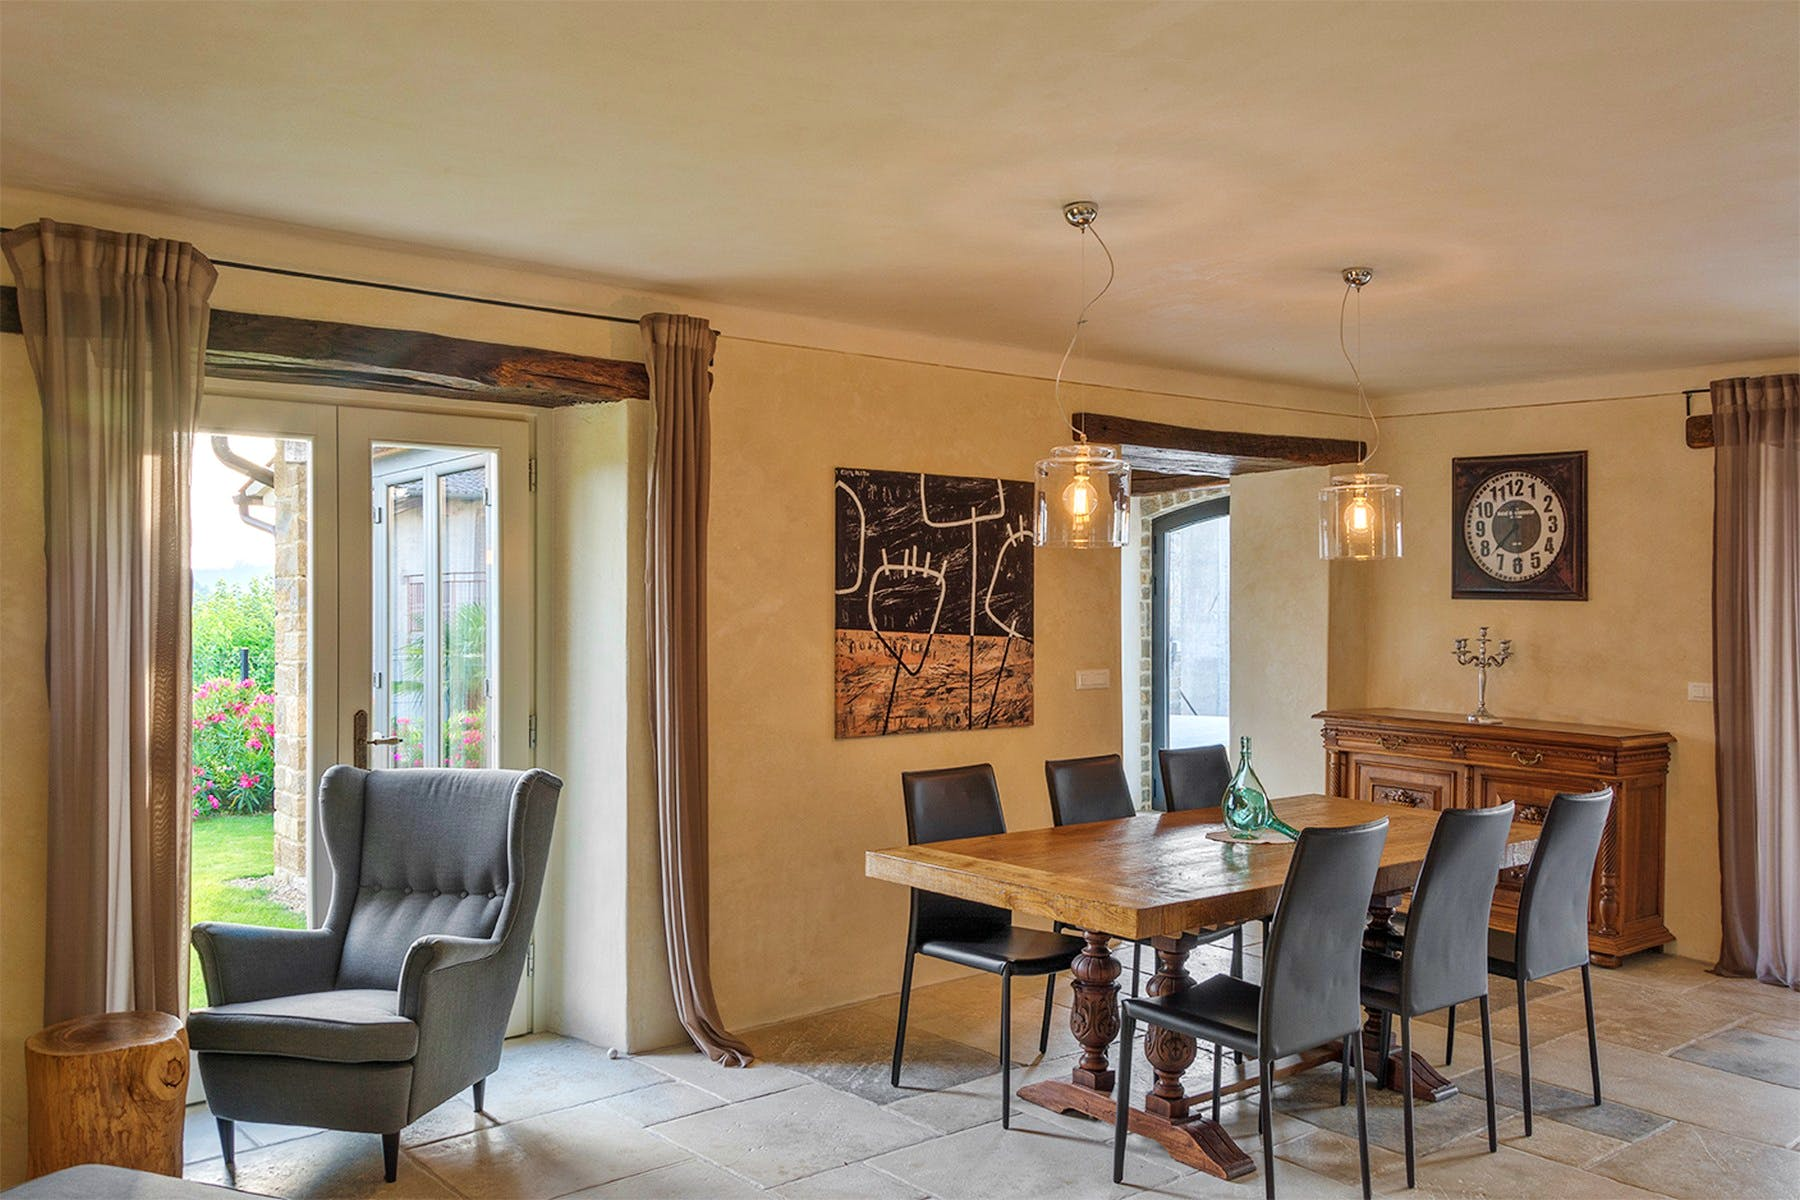 Dining room with direct access to the garden